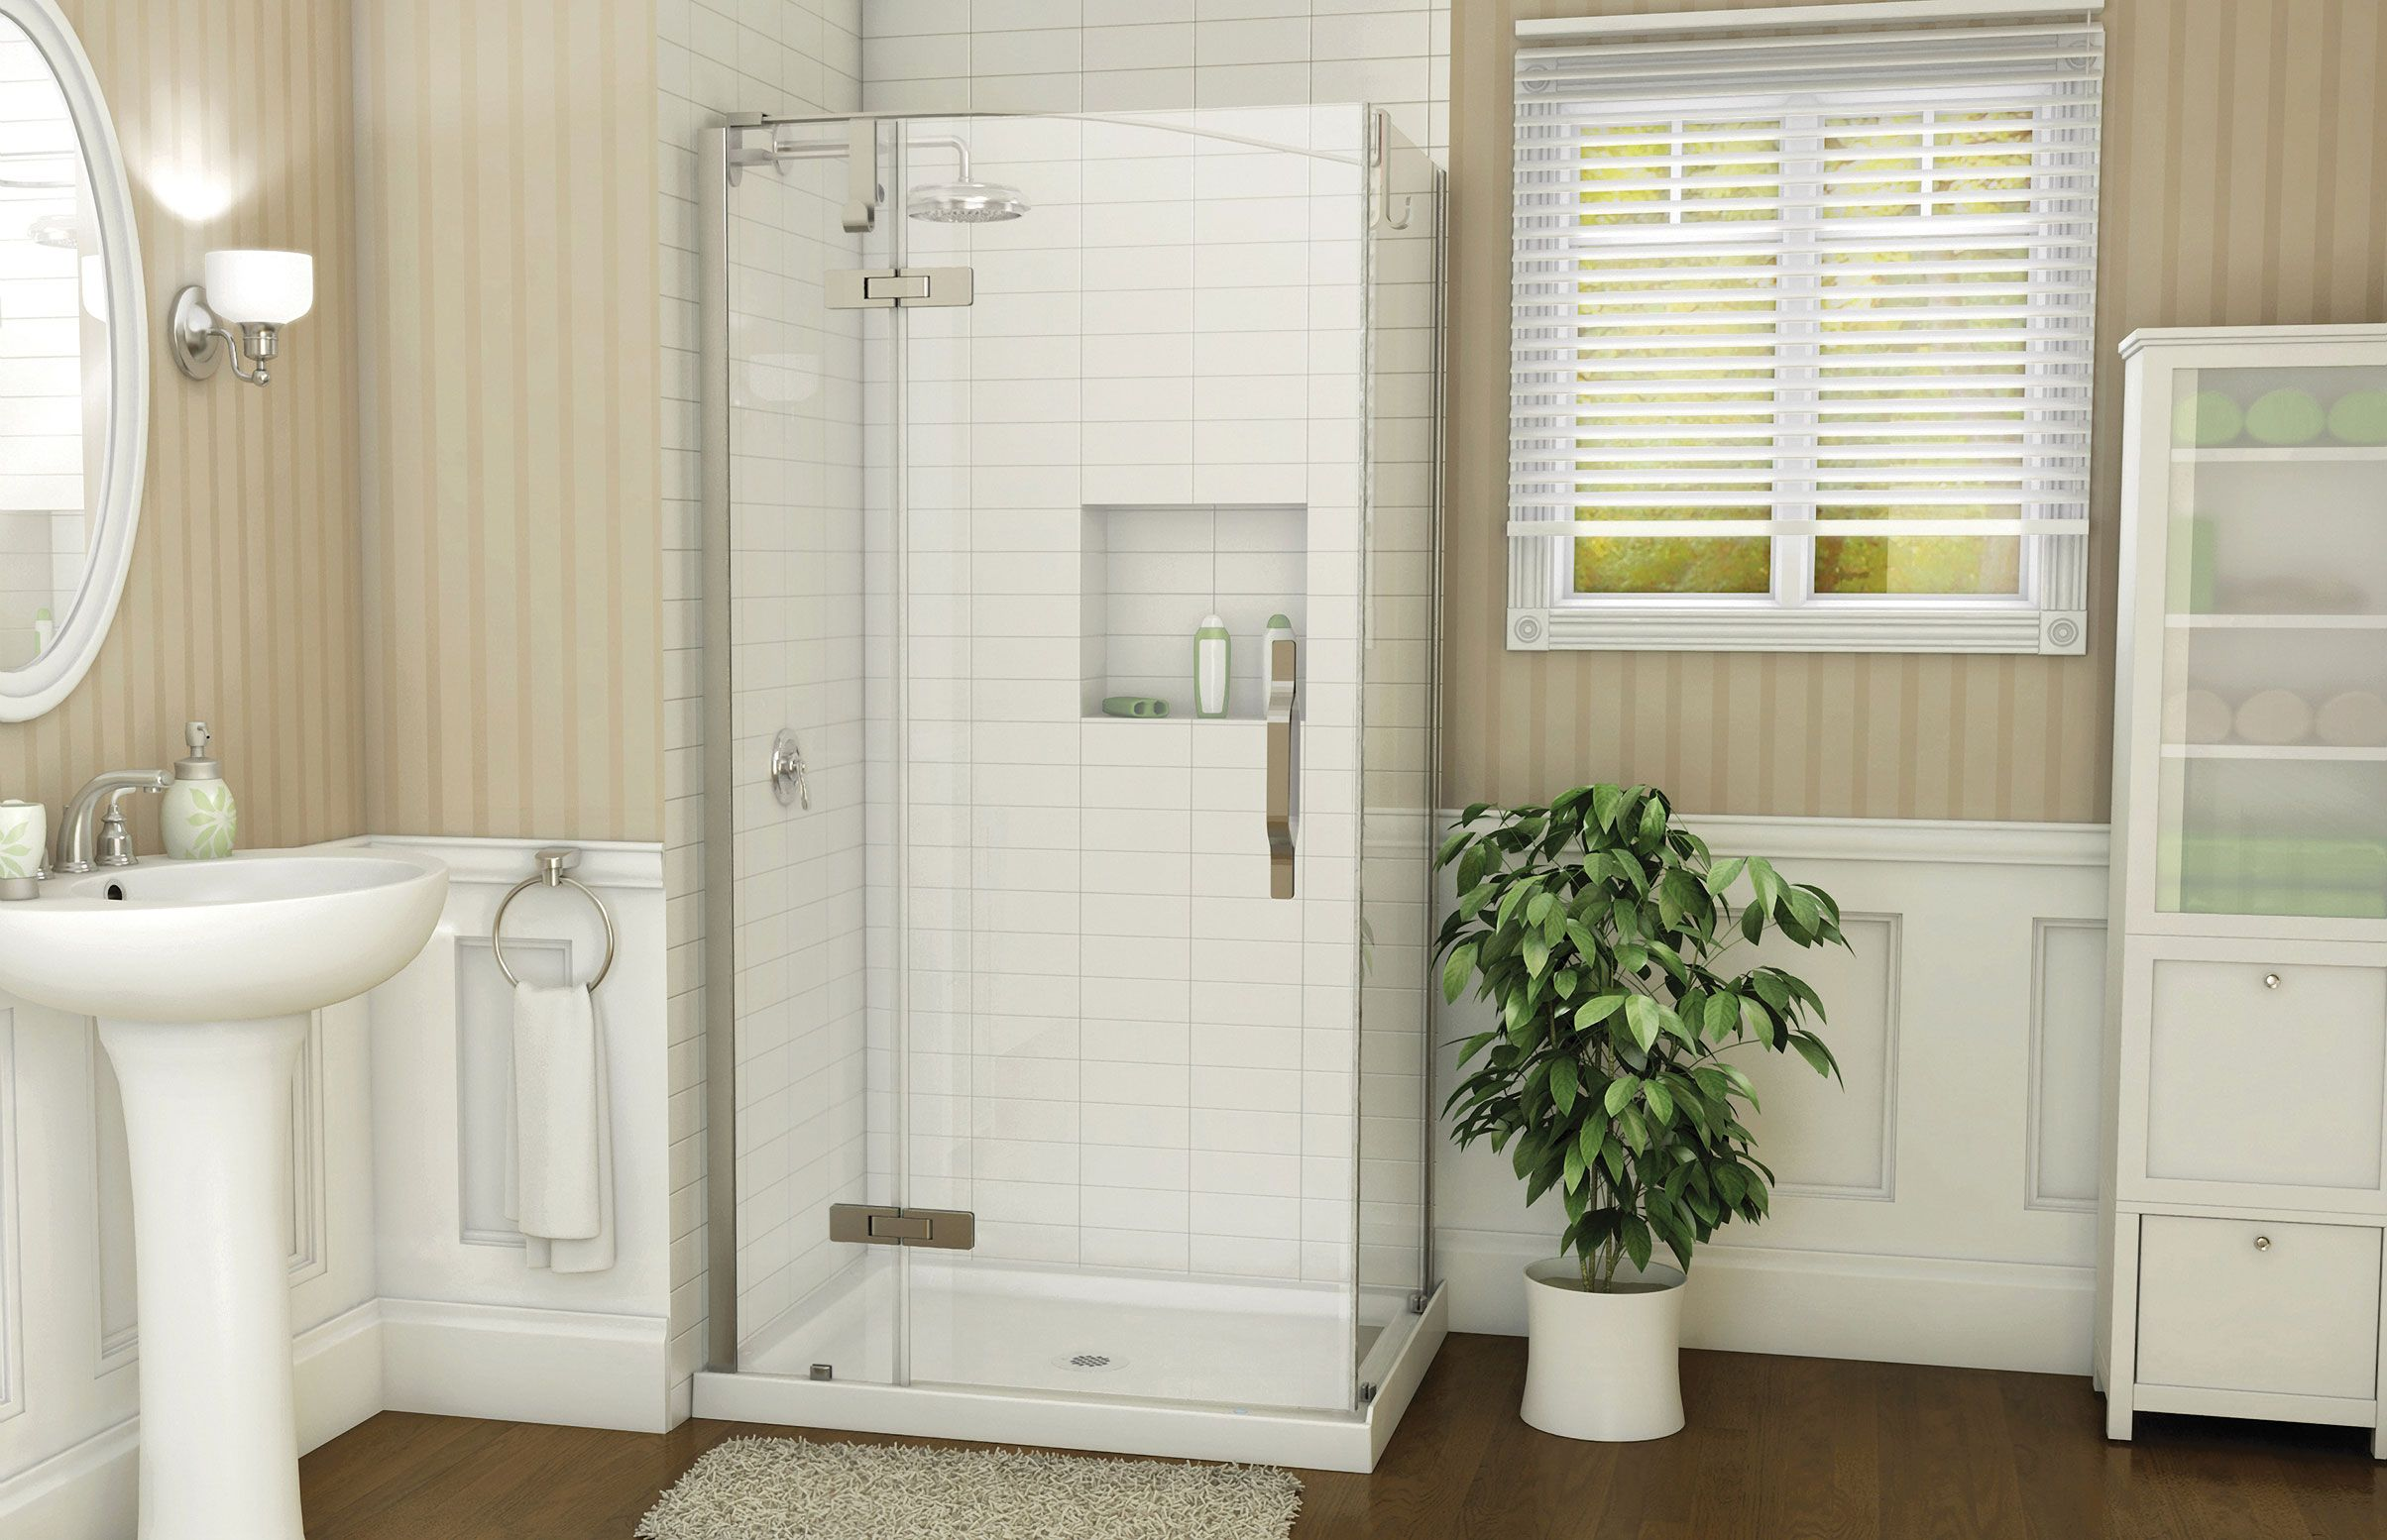 Azure 4234 Corner shower - Advanta by MAAX base and glass are a ...